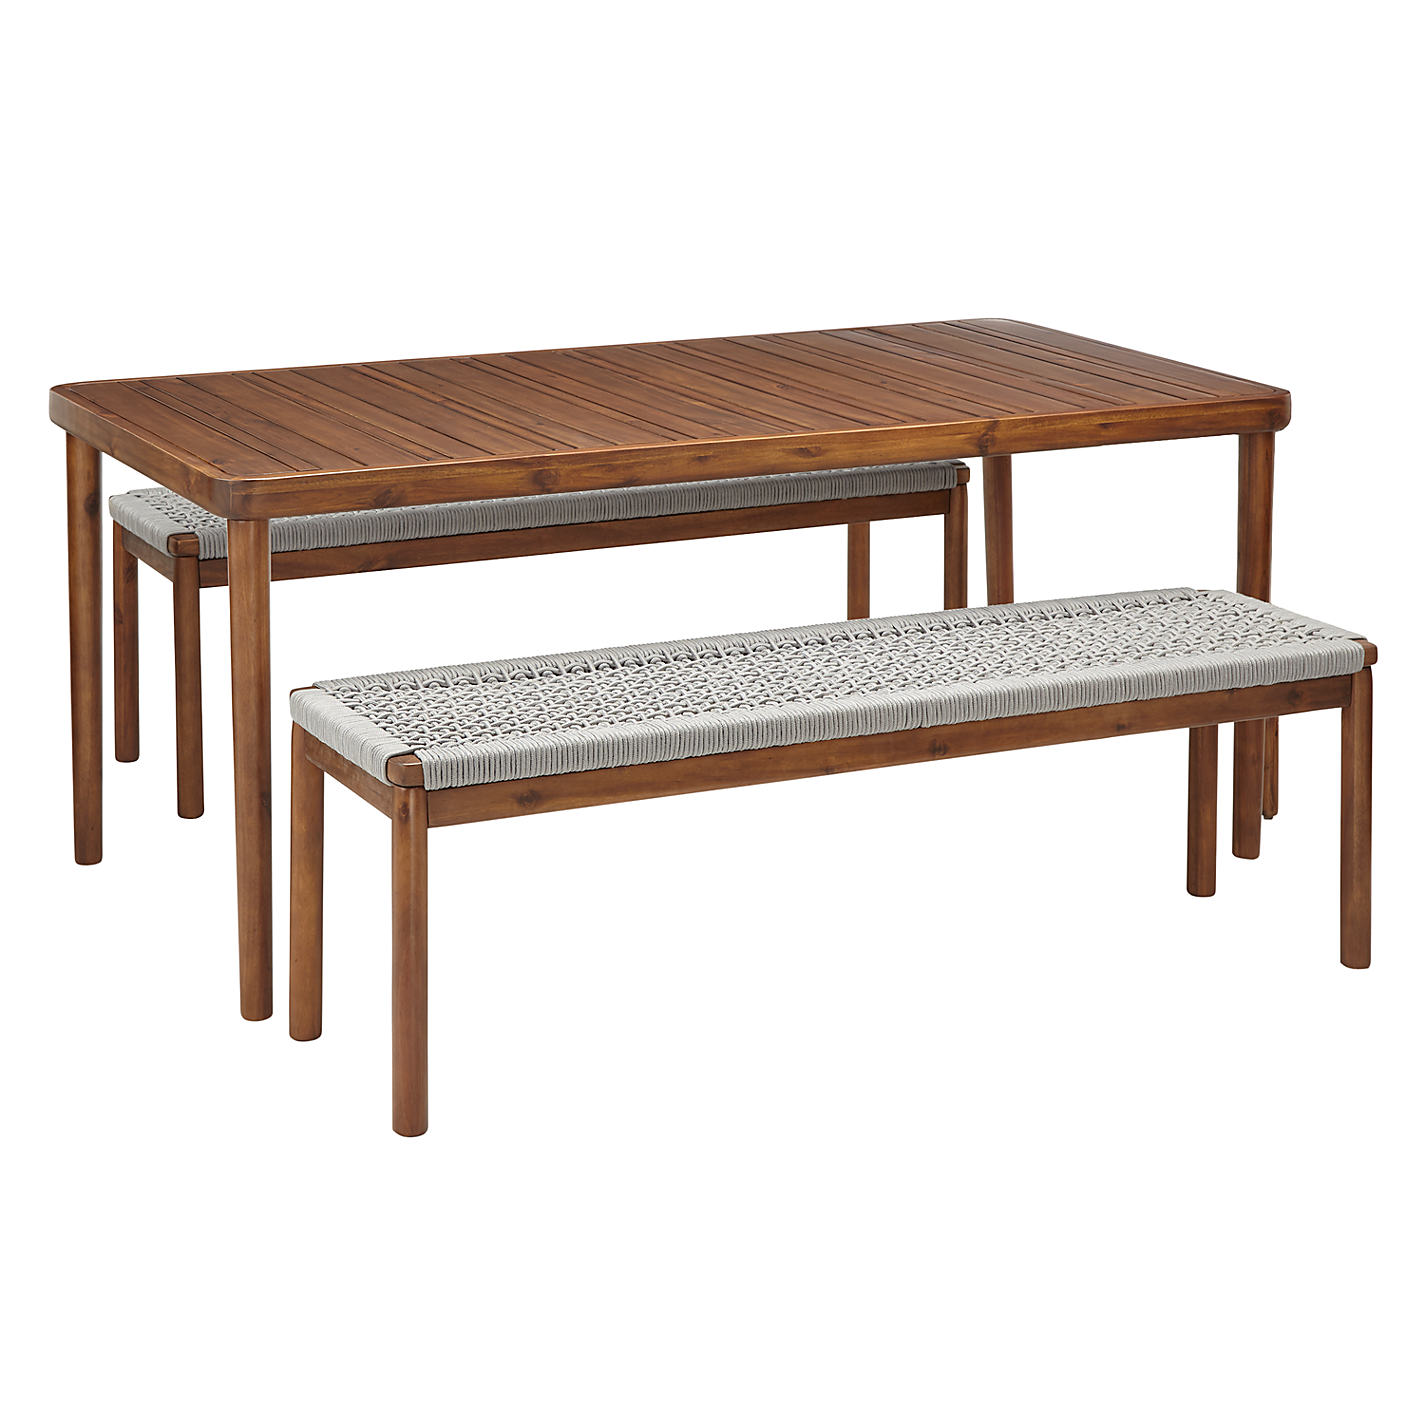 Buy Design Project by John Lewis No 096 Dining Table FSC